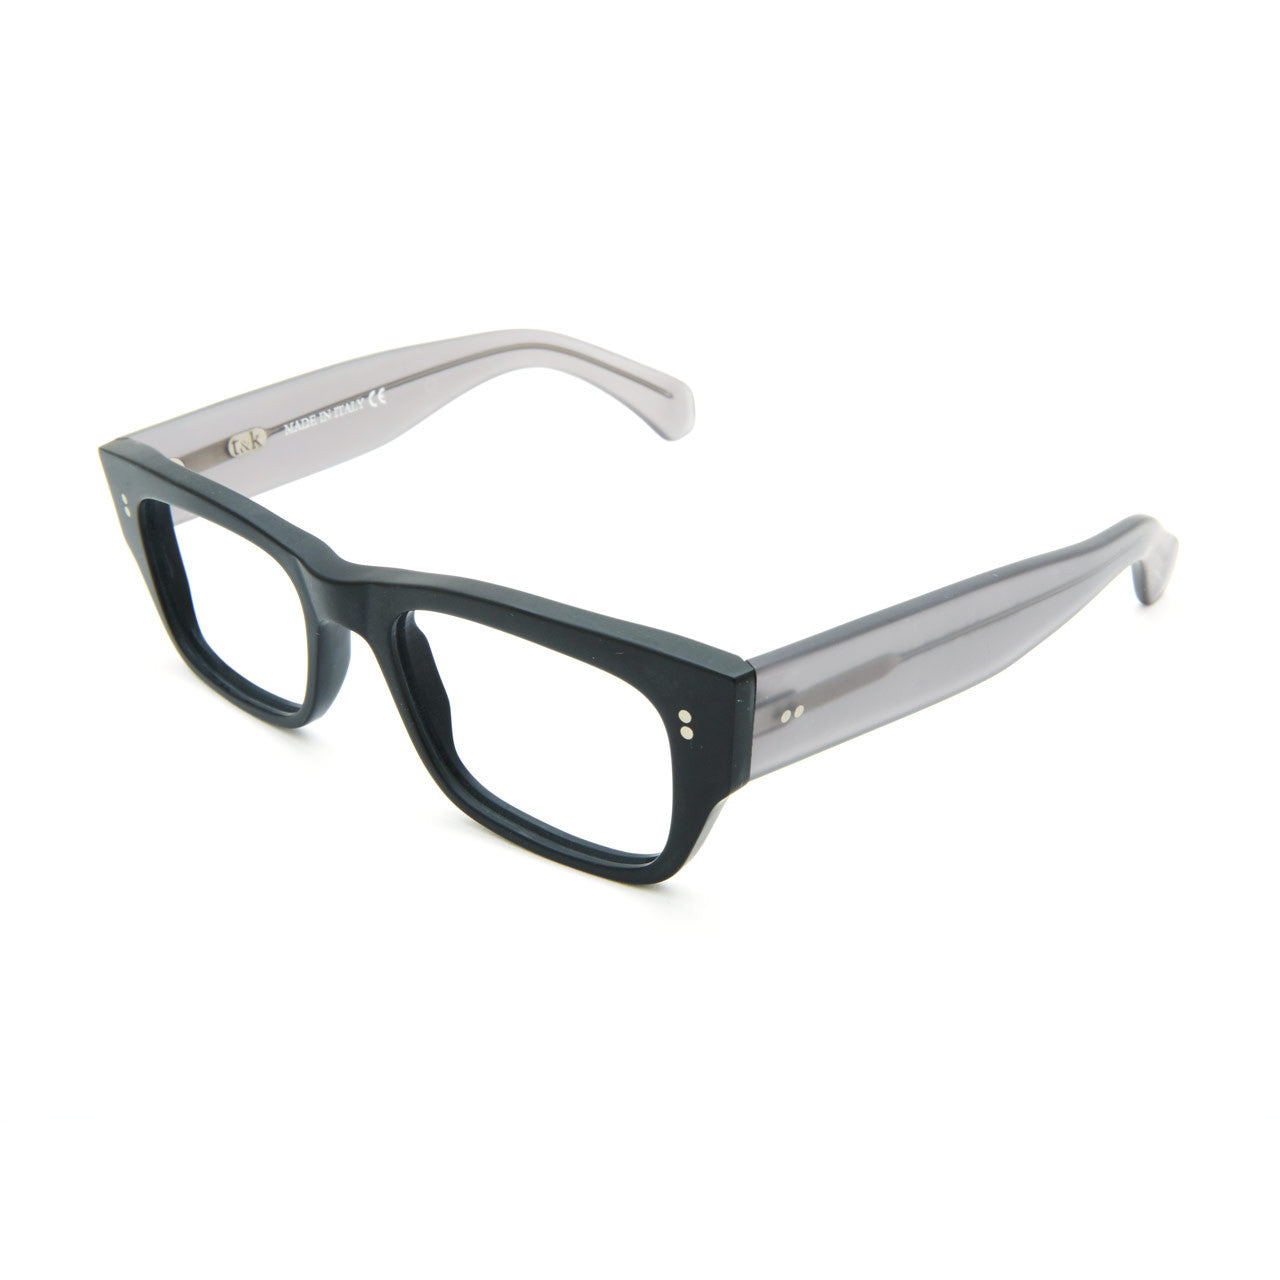 Garrison — Matte Black with Grey Temples